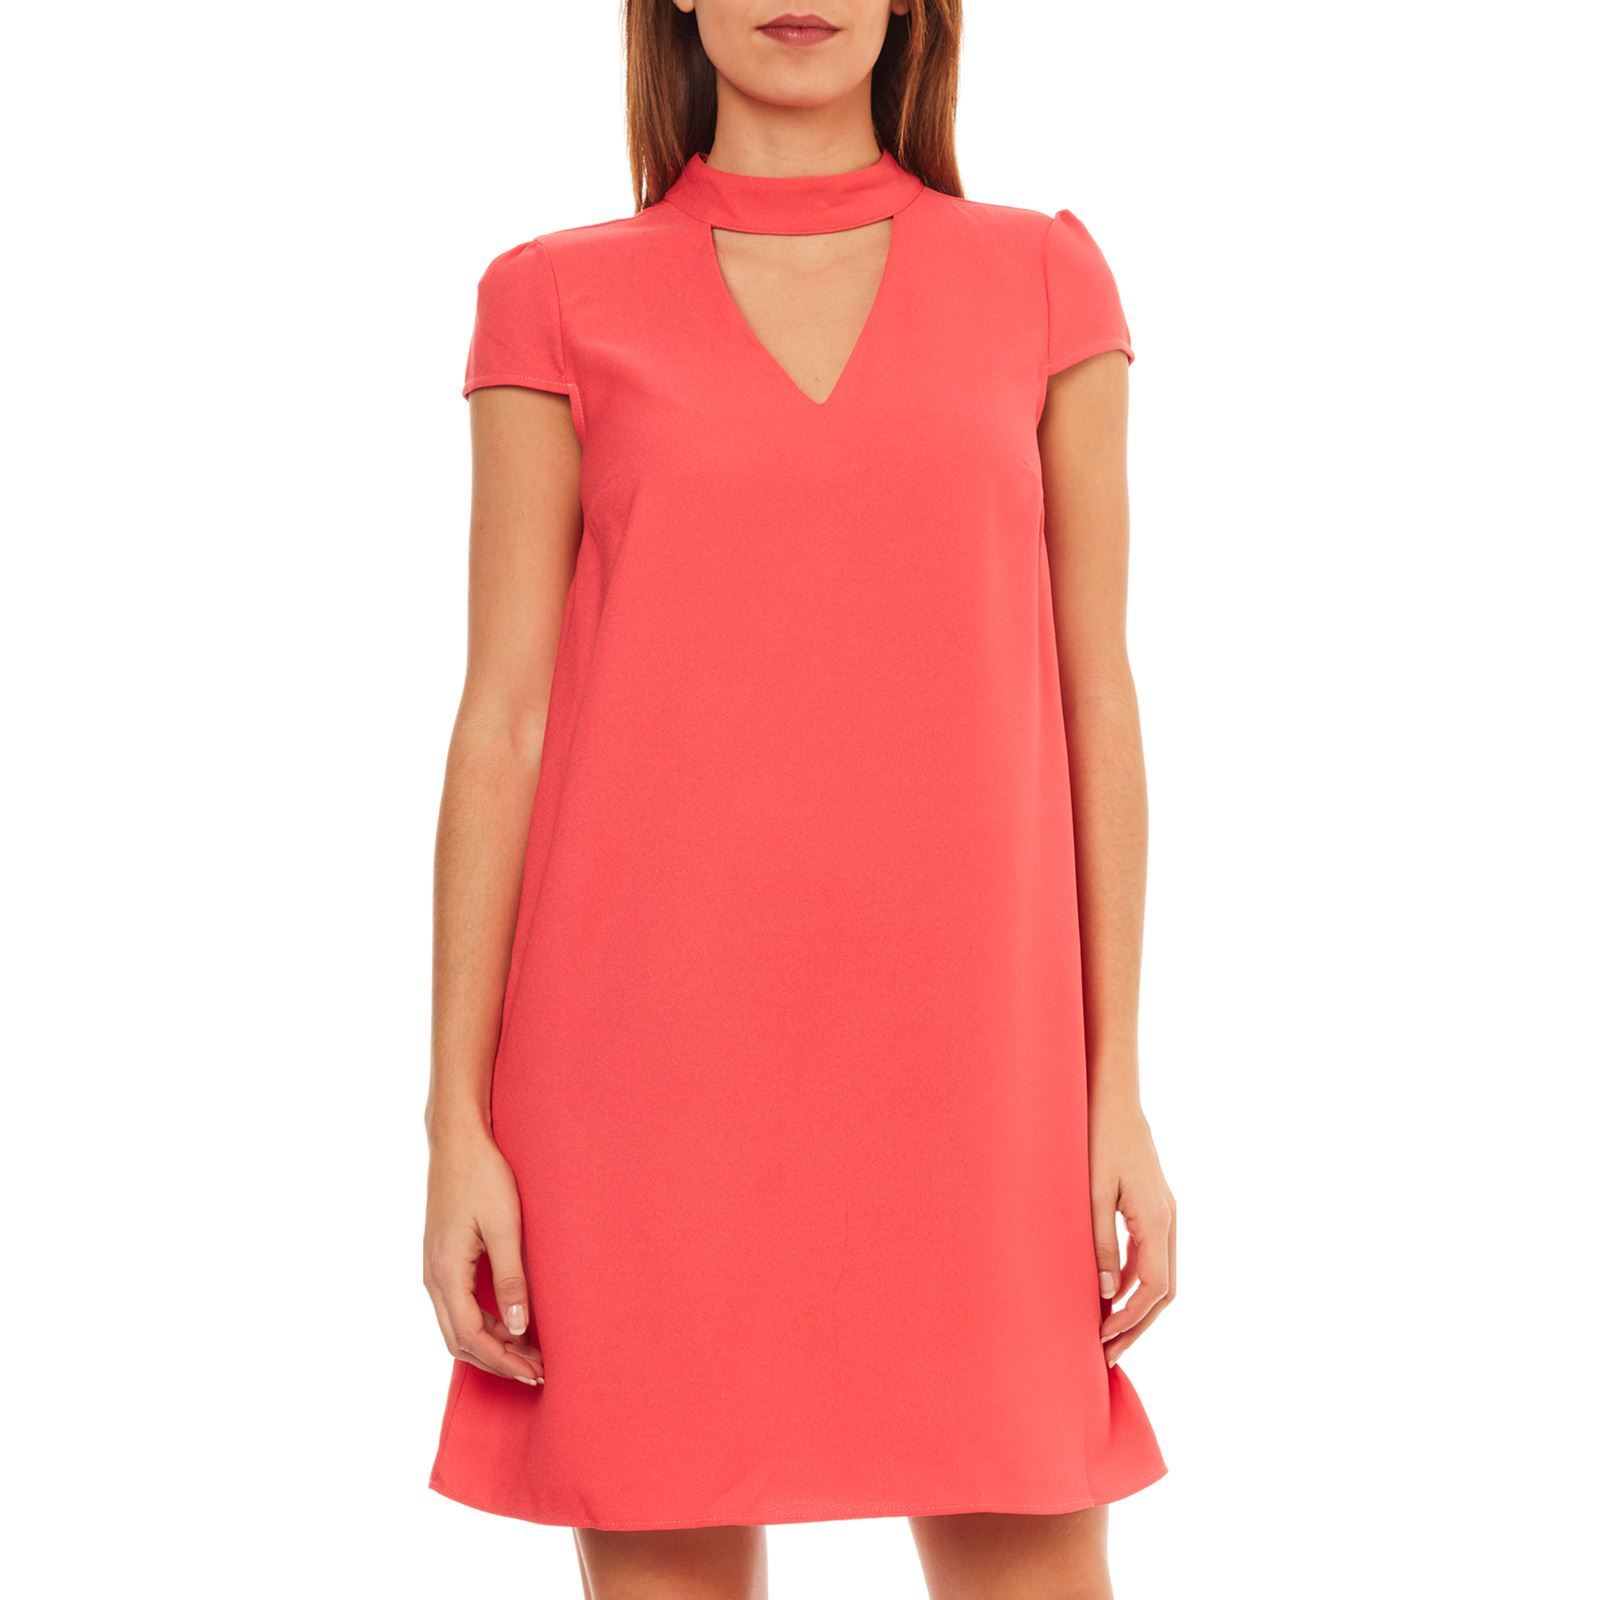 Naf Naf Polaire - Robe droite - corail   BrandAlley 6ee1db031340